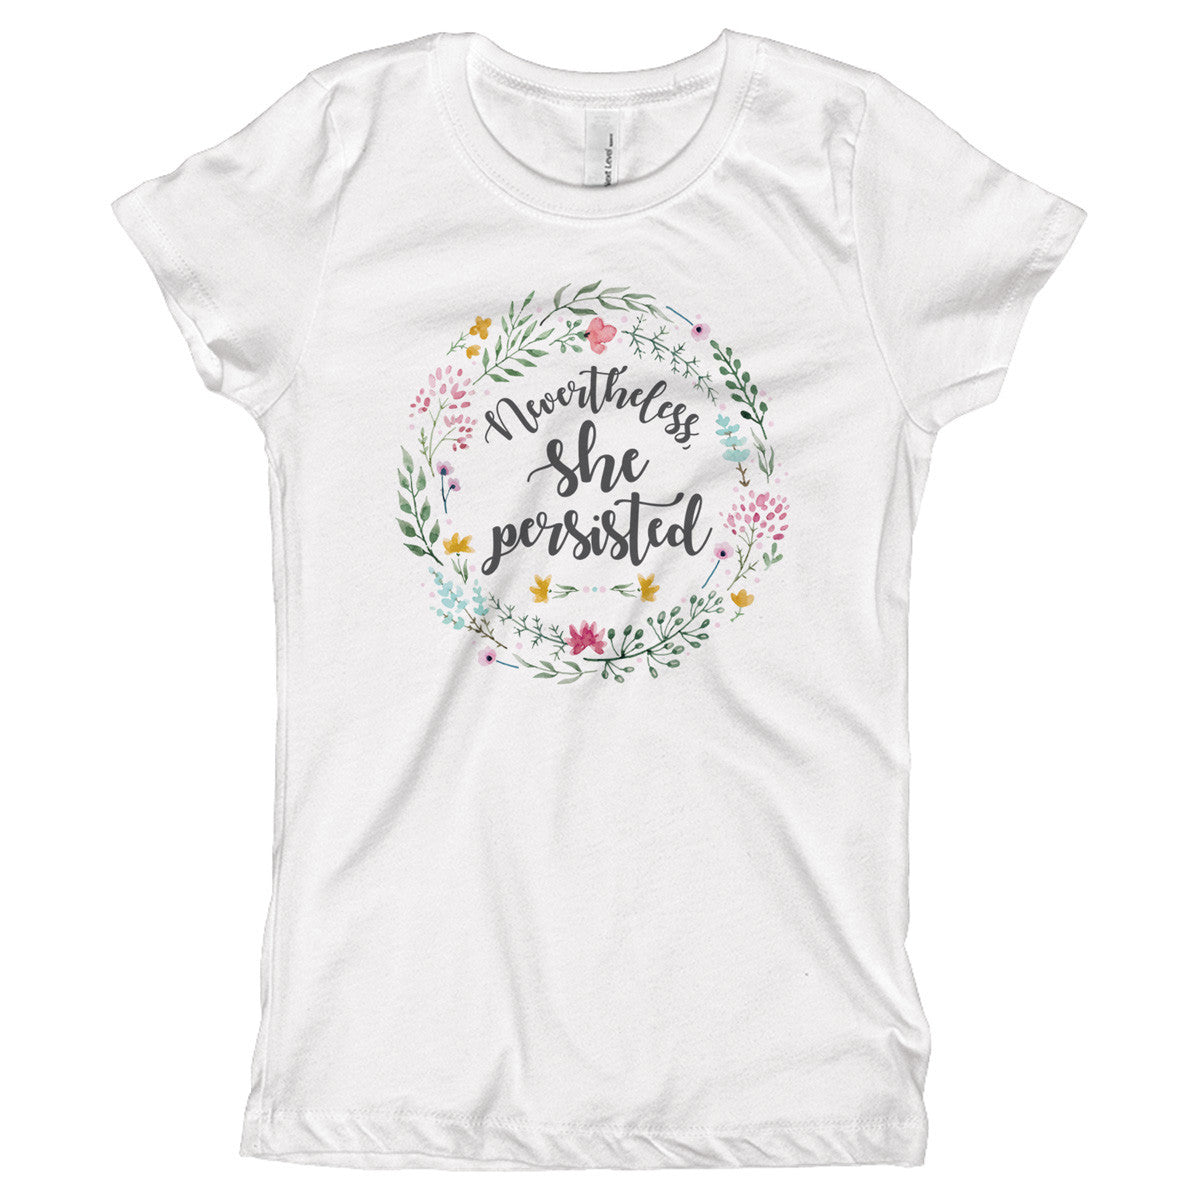 Nevertheless, She Persisted Youth Size T-Shirt